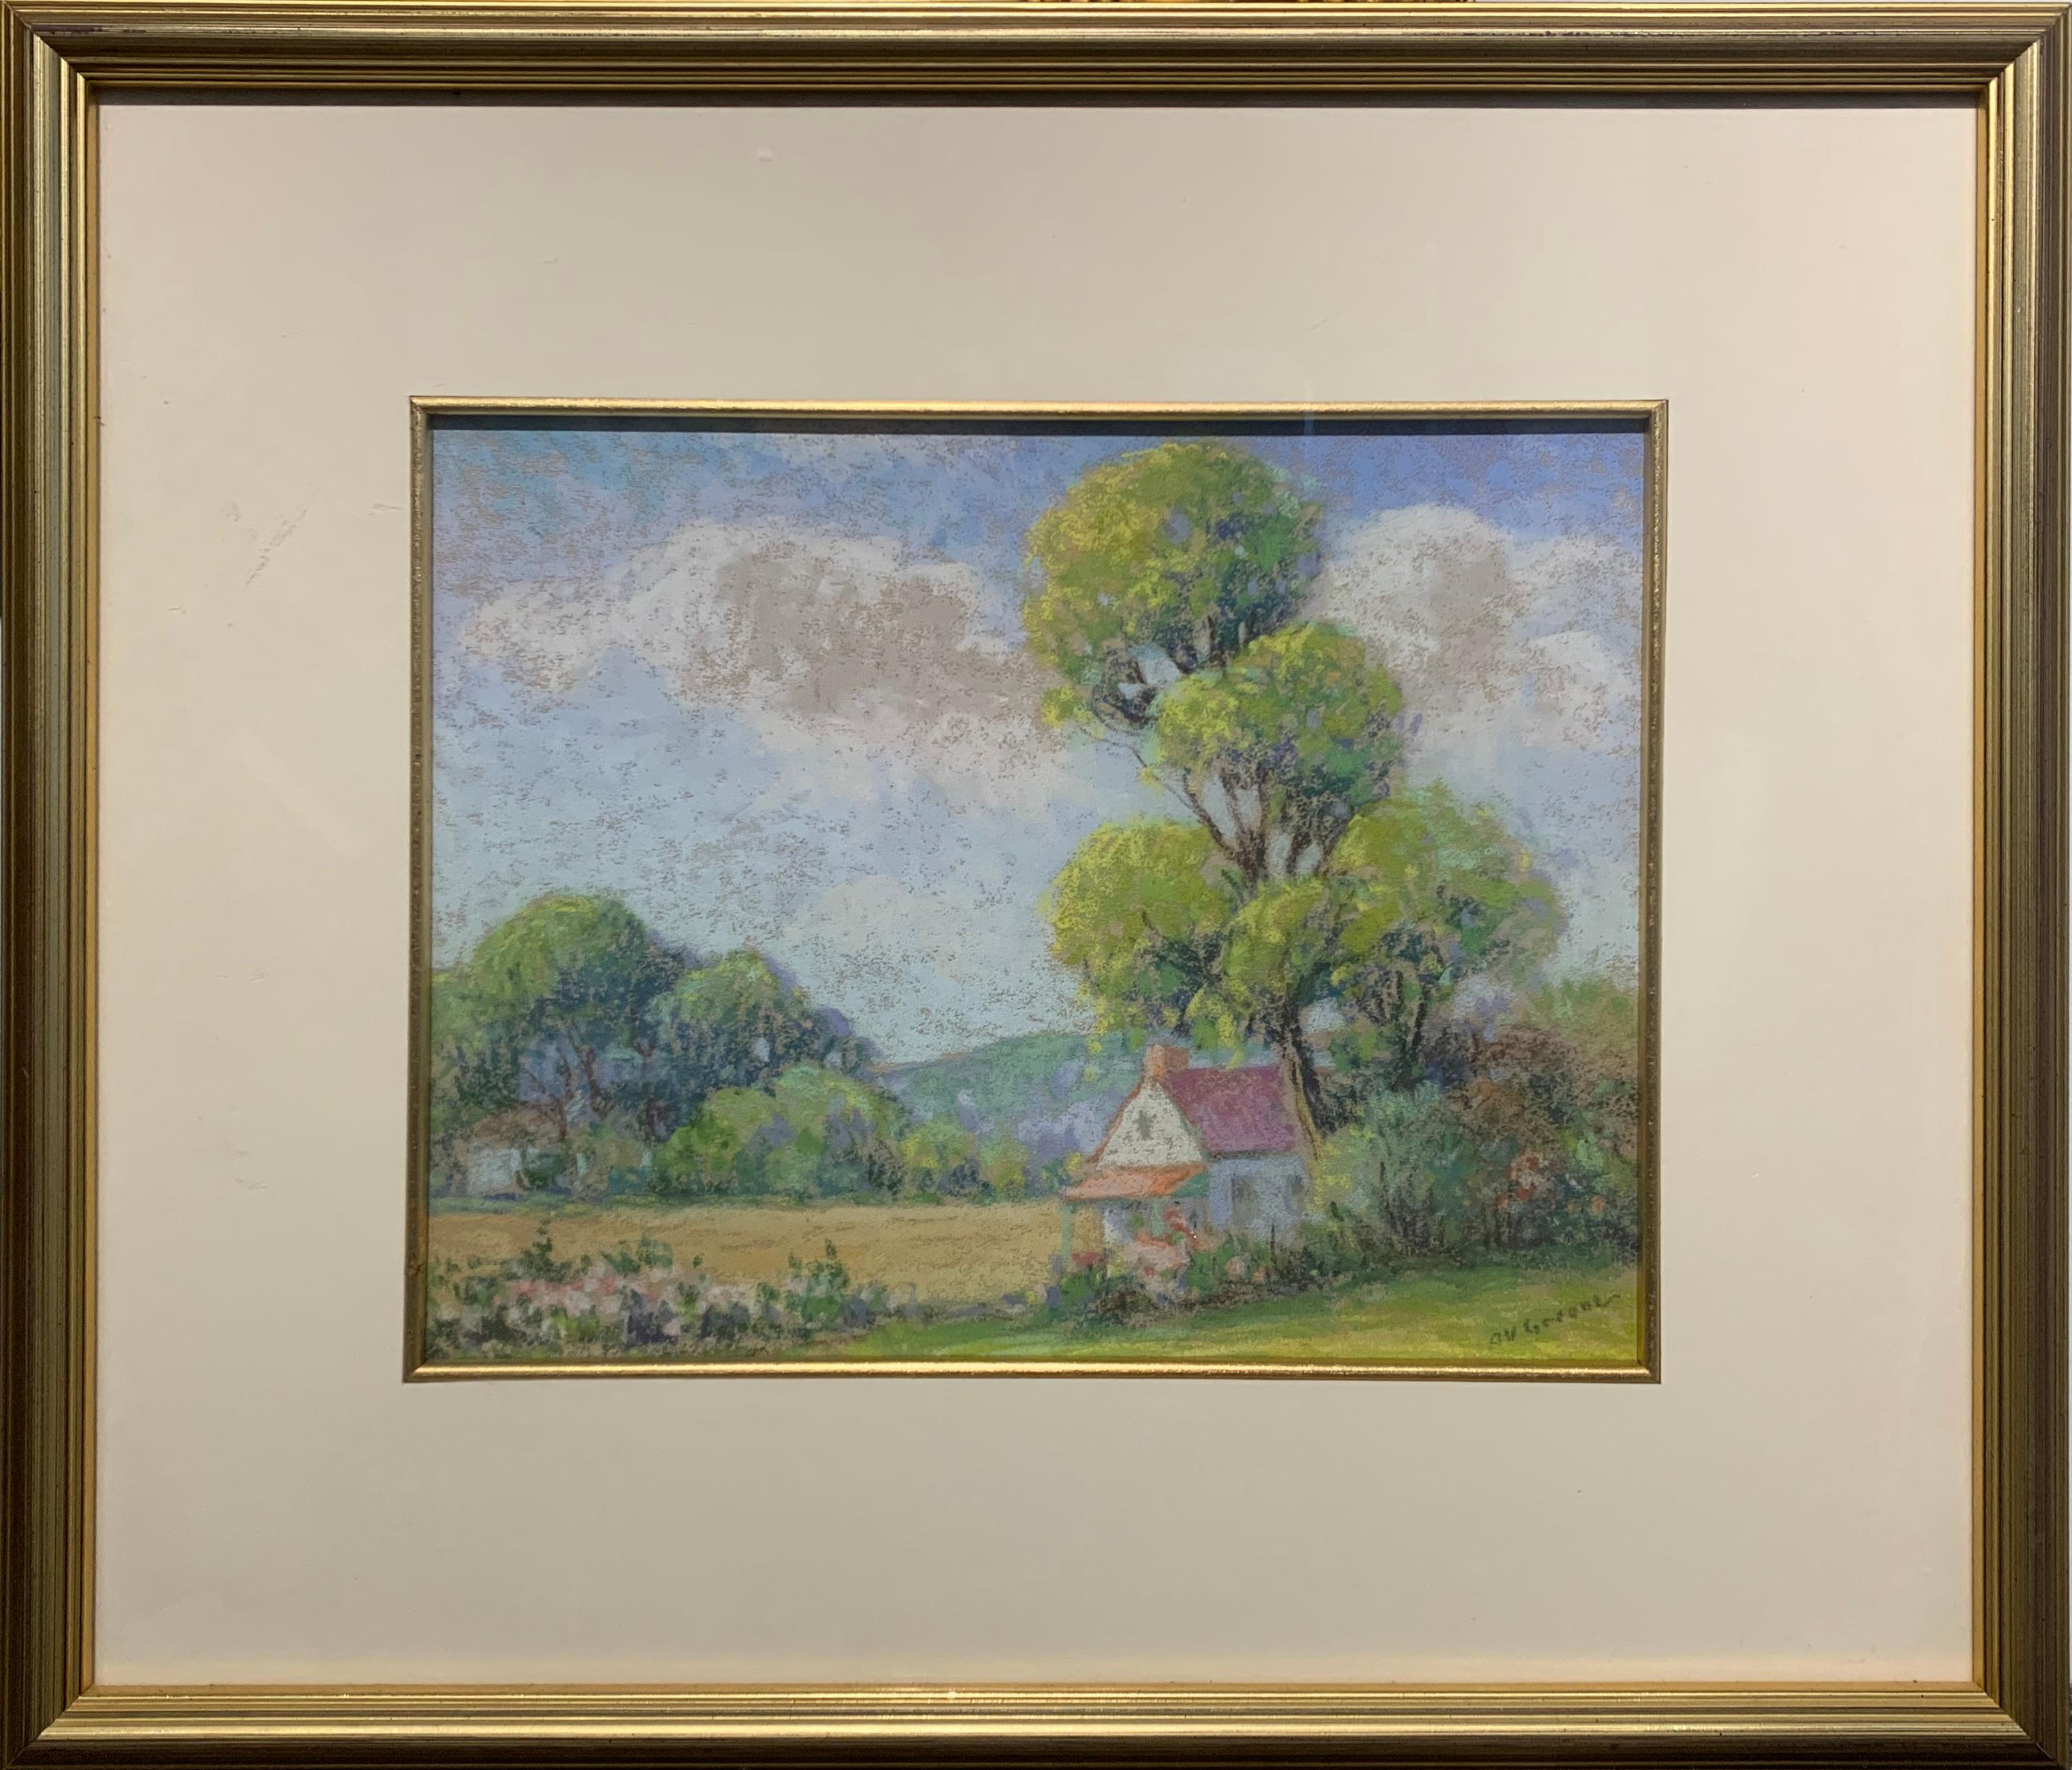 Houses in Summer, New Hope, American Impressionist Landscape, Pastel on Paper